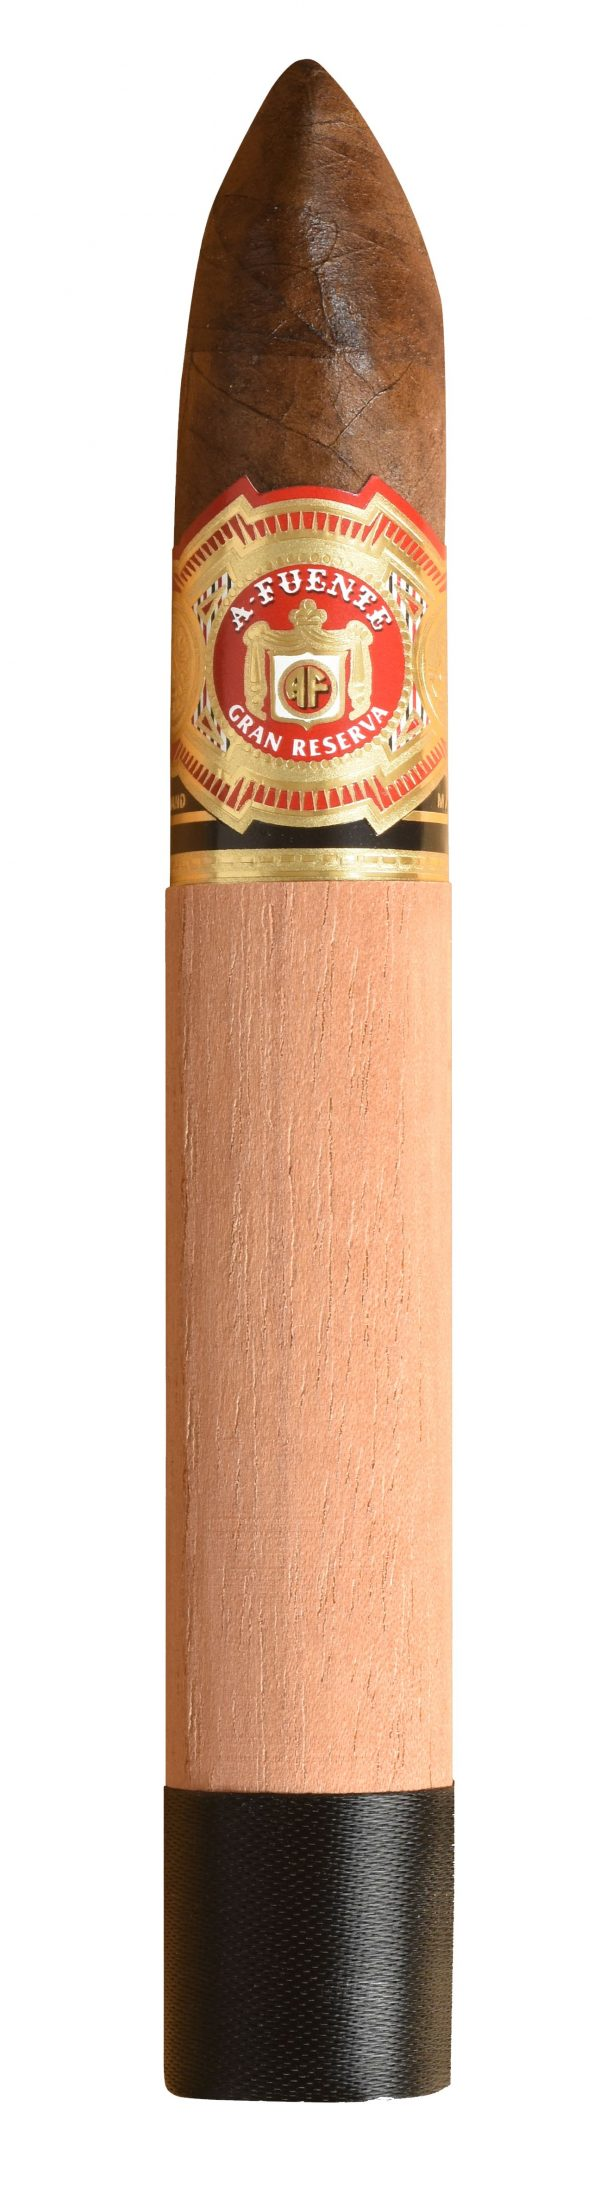 Single Arturo Fuente Chateau Cuban Belicoso Sungrown cigar